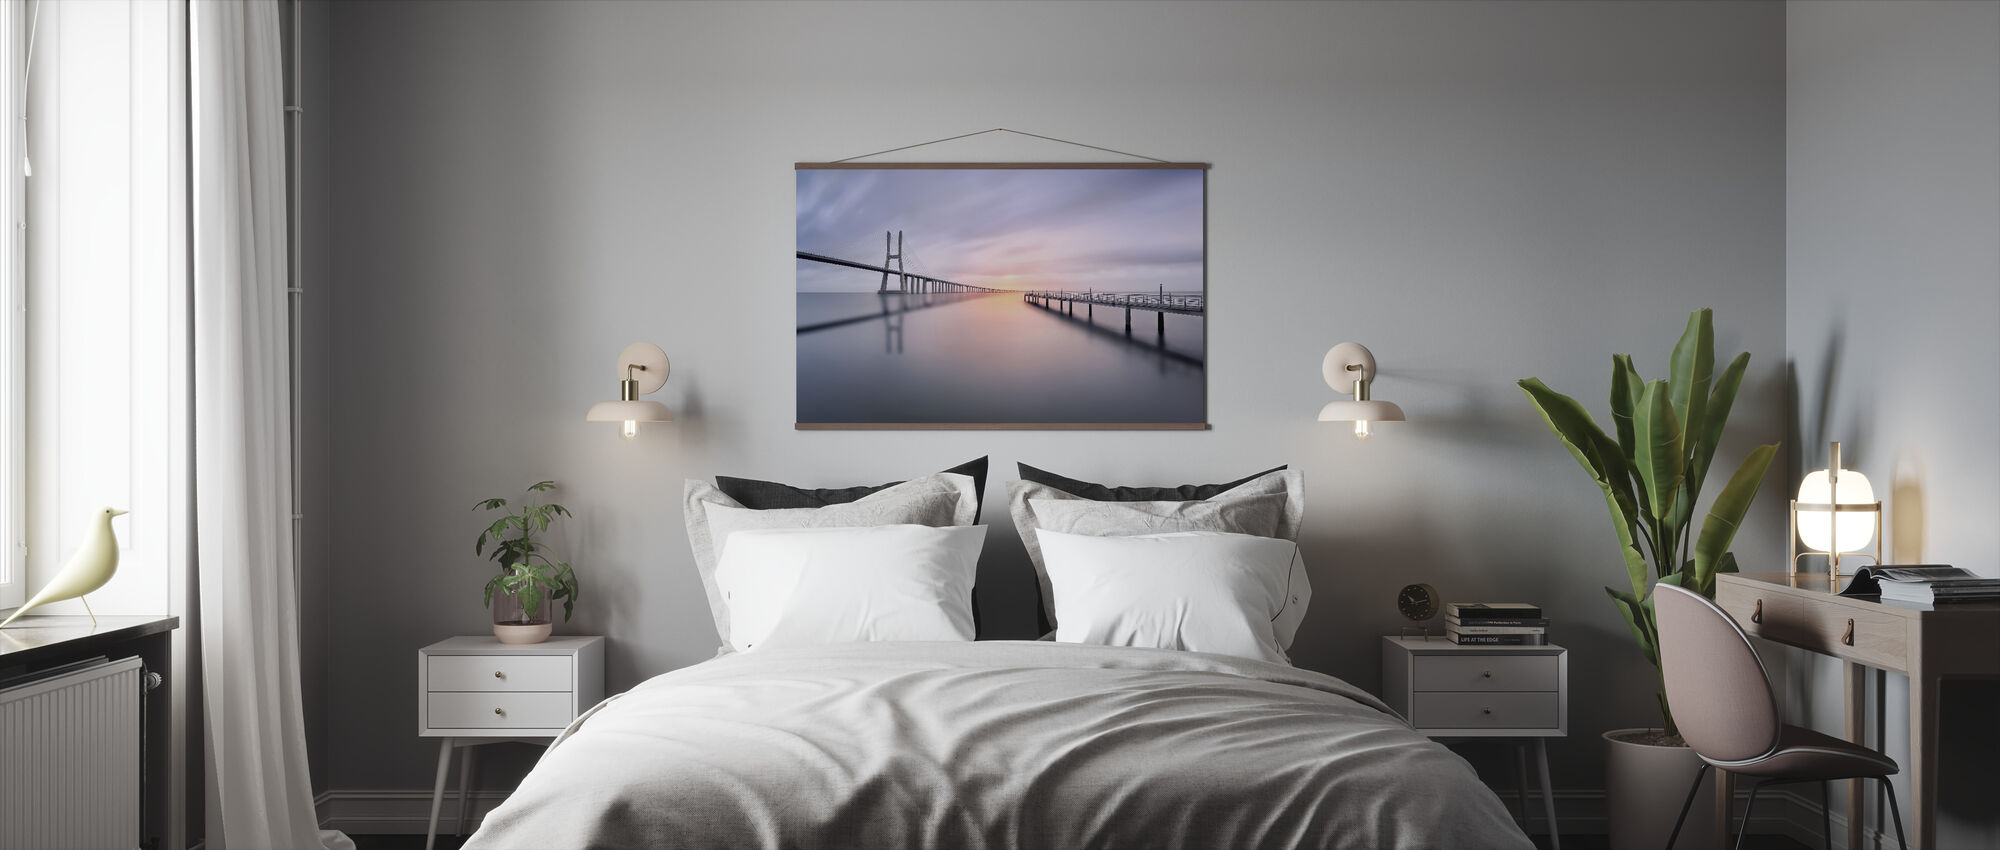 Vasco de Gama - Poster - Bedroom